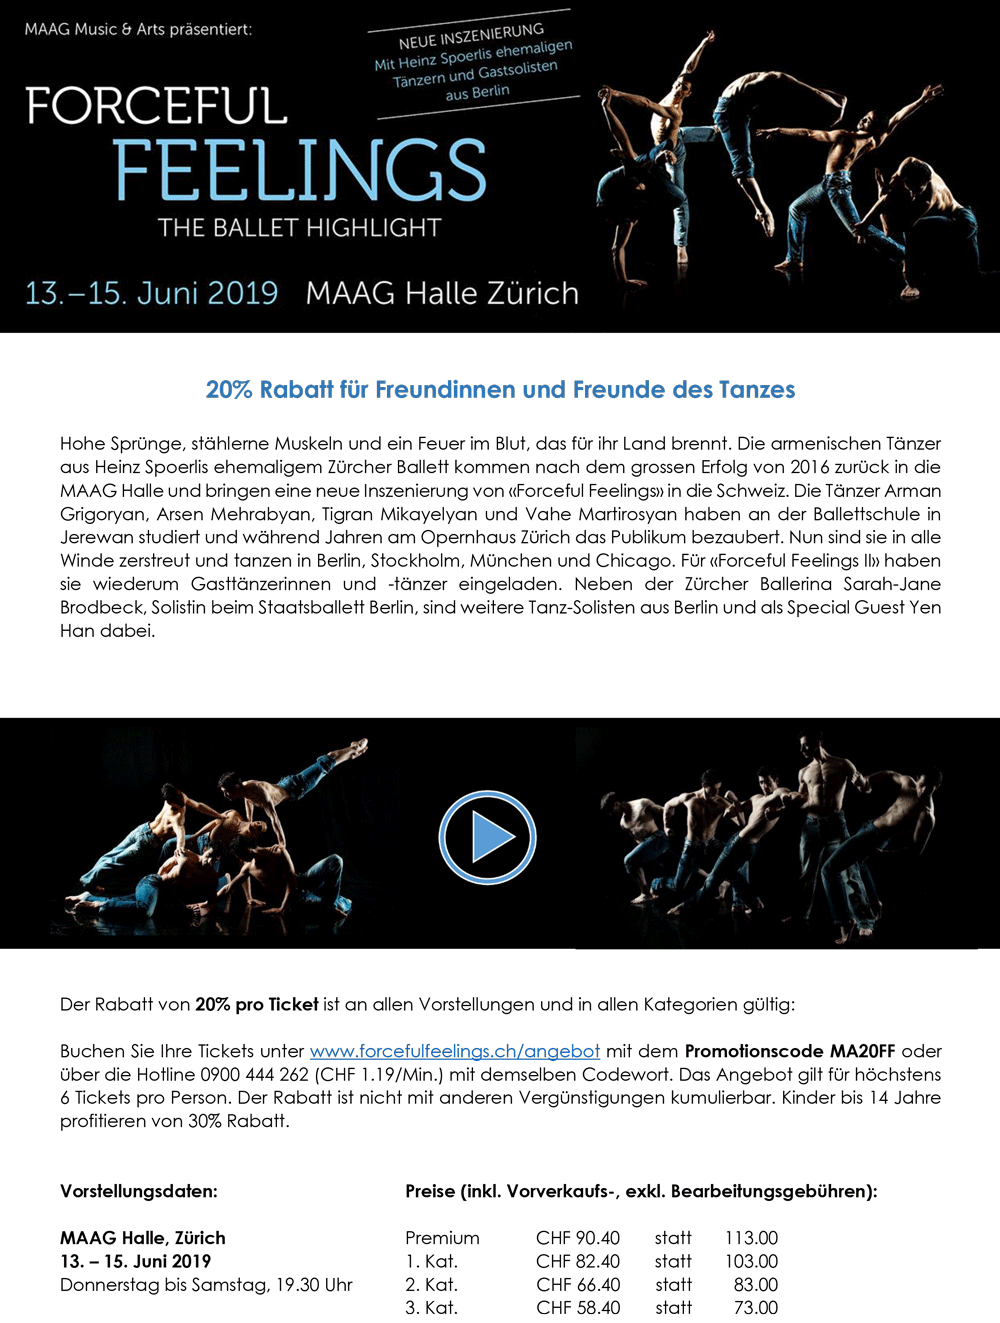 Tanzschulangebot_Forceful-Feelings_DE-1000